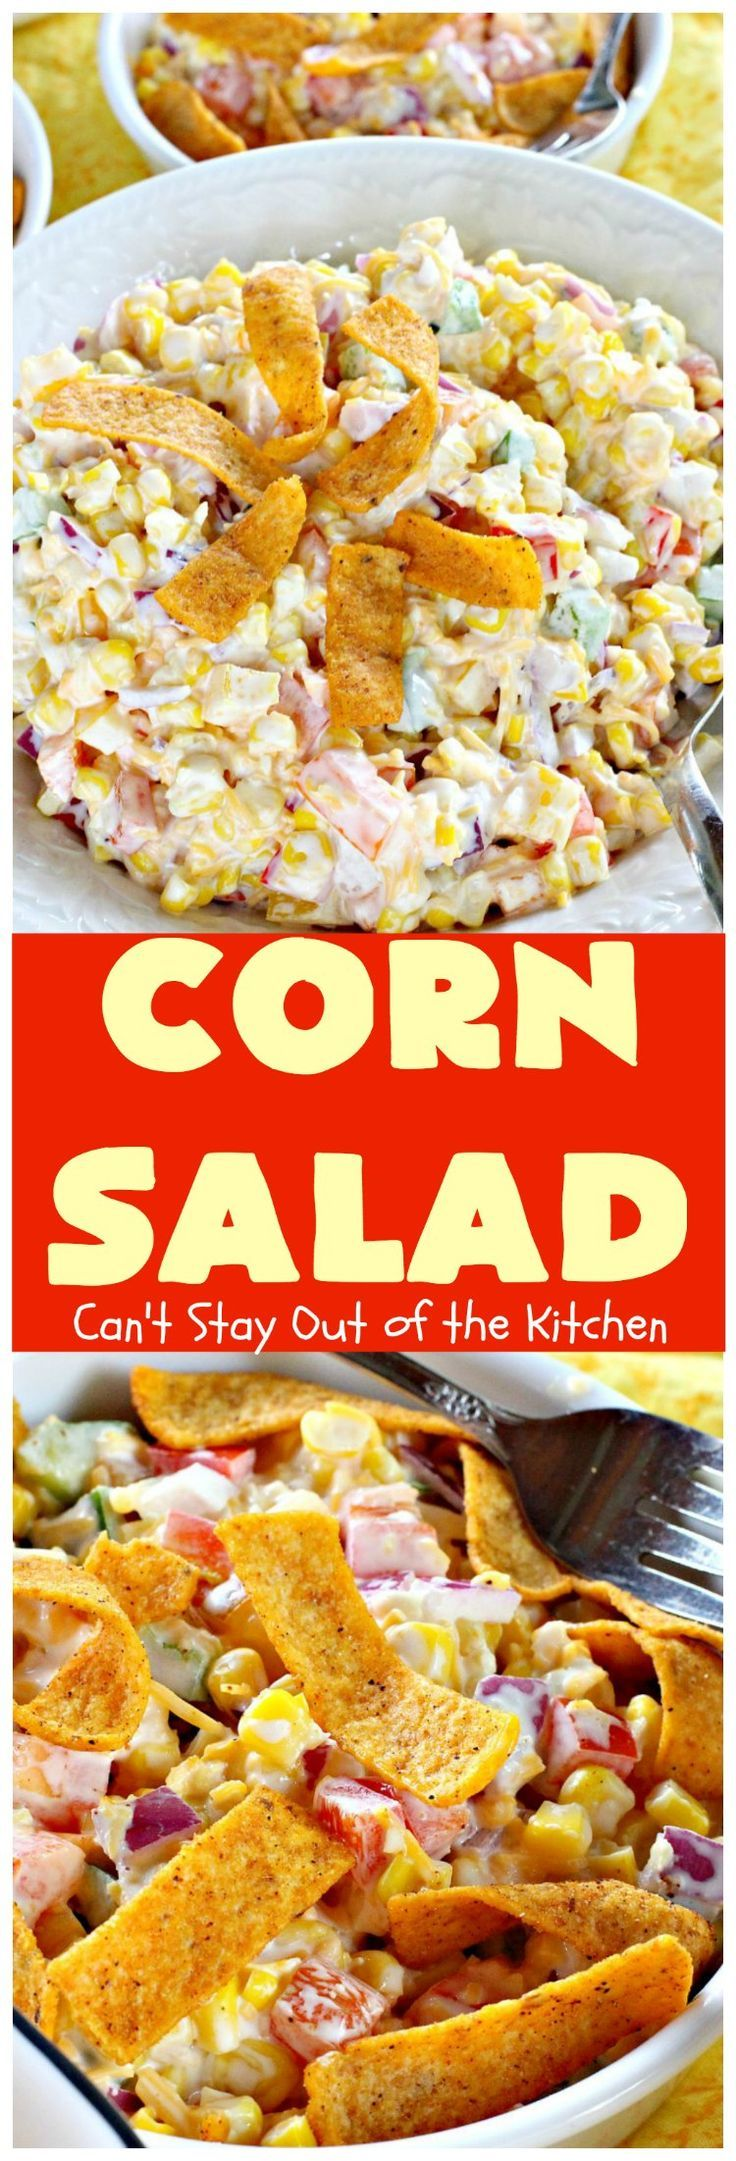 INGREDIENTS 1 can whole kernel corn drained 1/2 cup mayonnaise or Miracle Whip 1/2 cup red onion diced fine 1 cup bell pepper 1/3 each of red, orange and yellow 1 cup shredded cheese 1/4 7-oz. bag Chili-Cheese Fritos